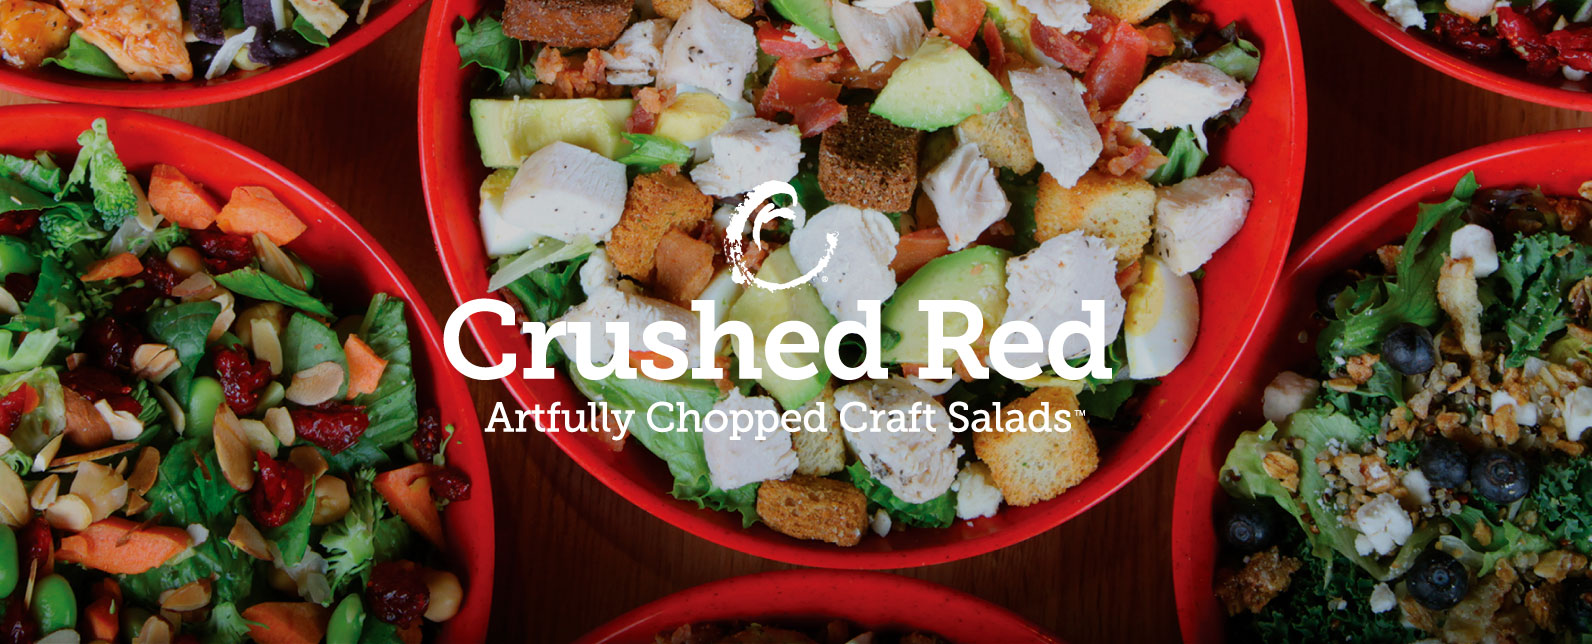 Crushed Red salads